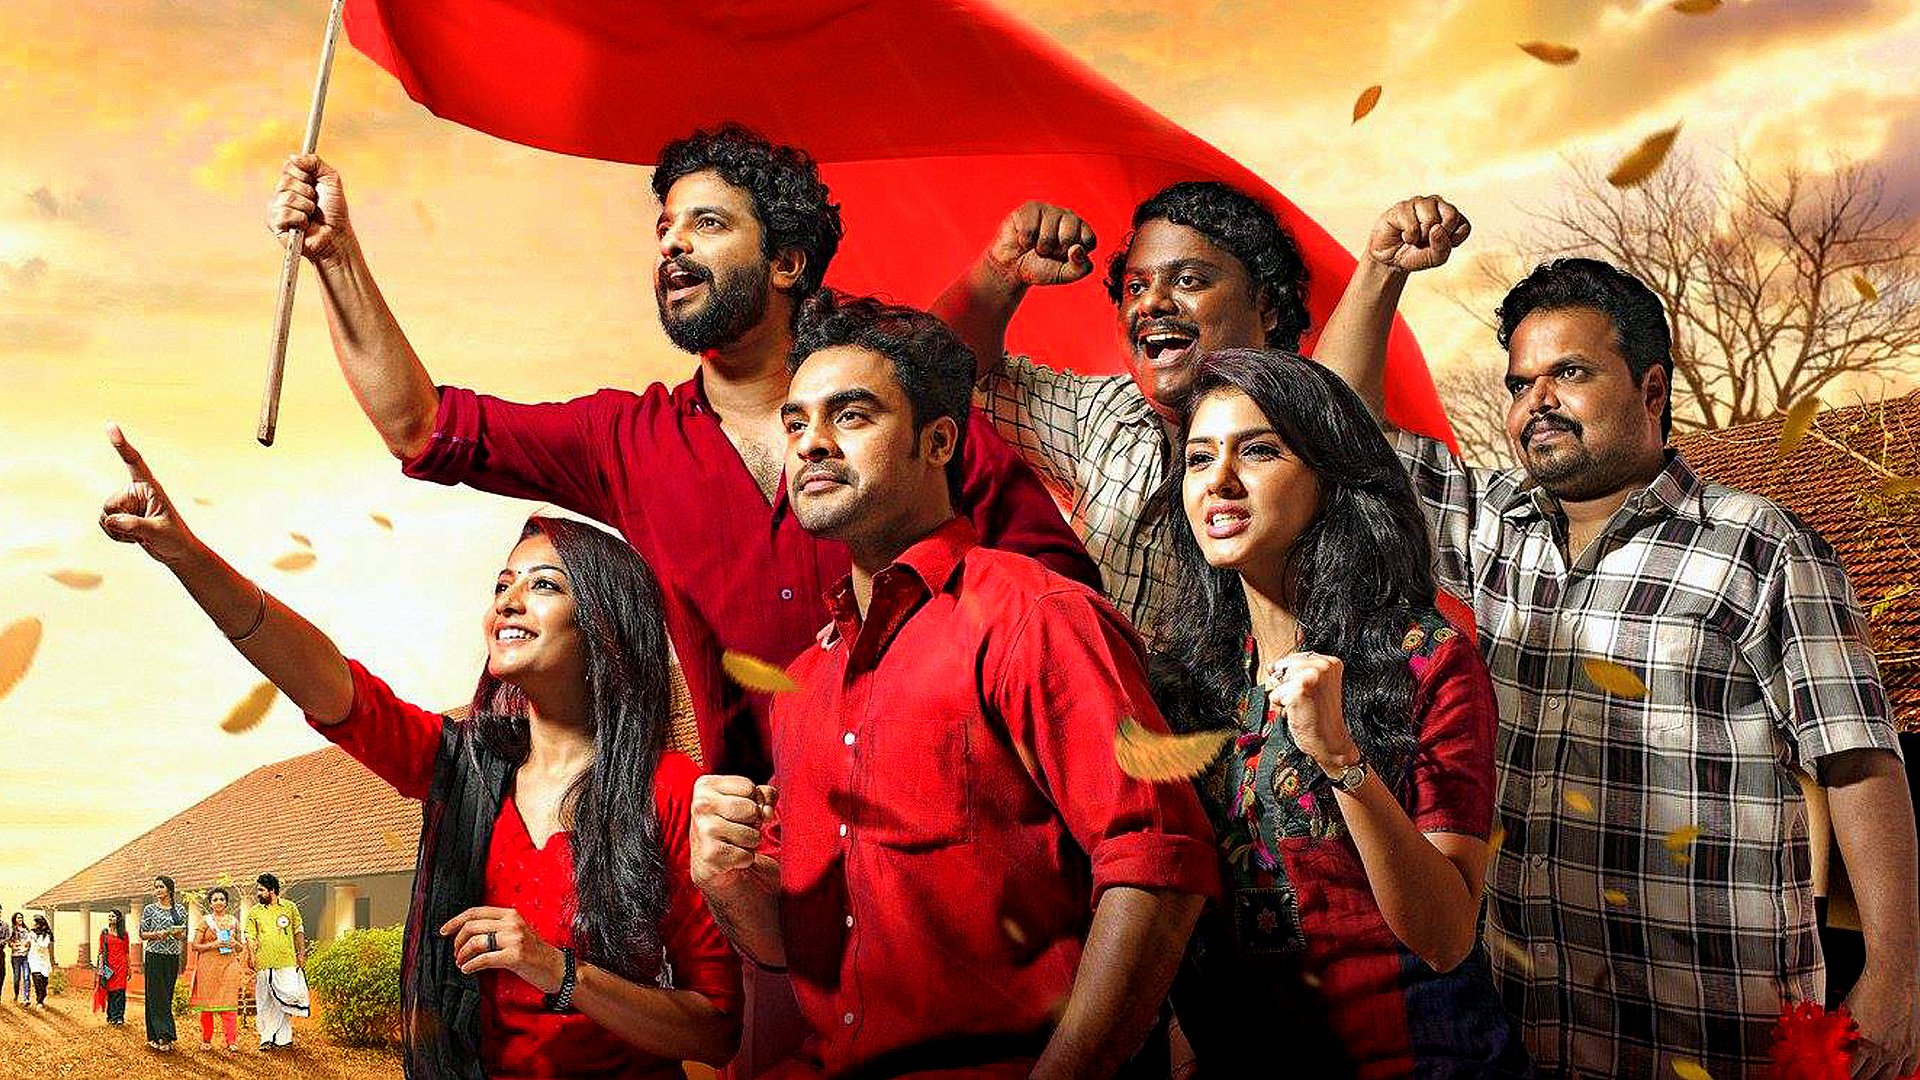 students and politics in malayalam